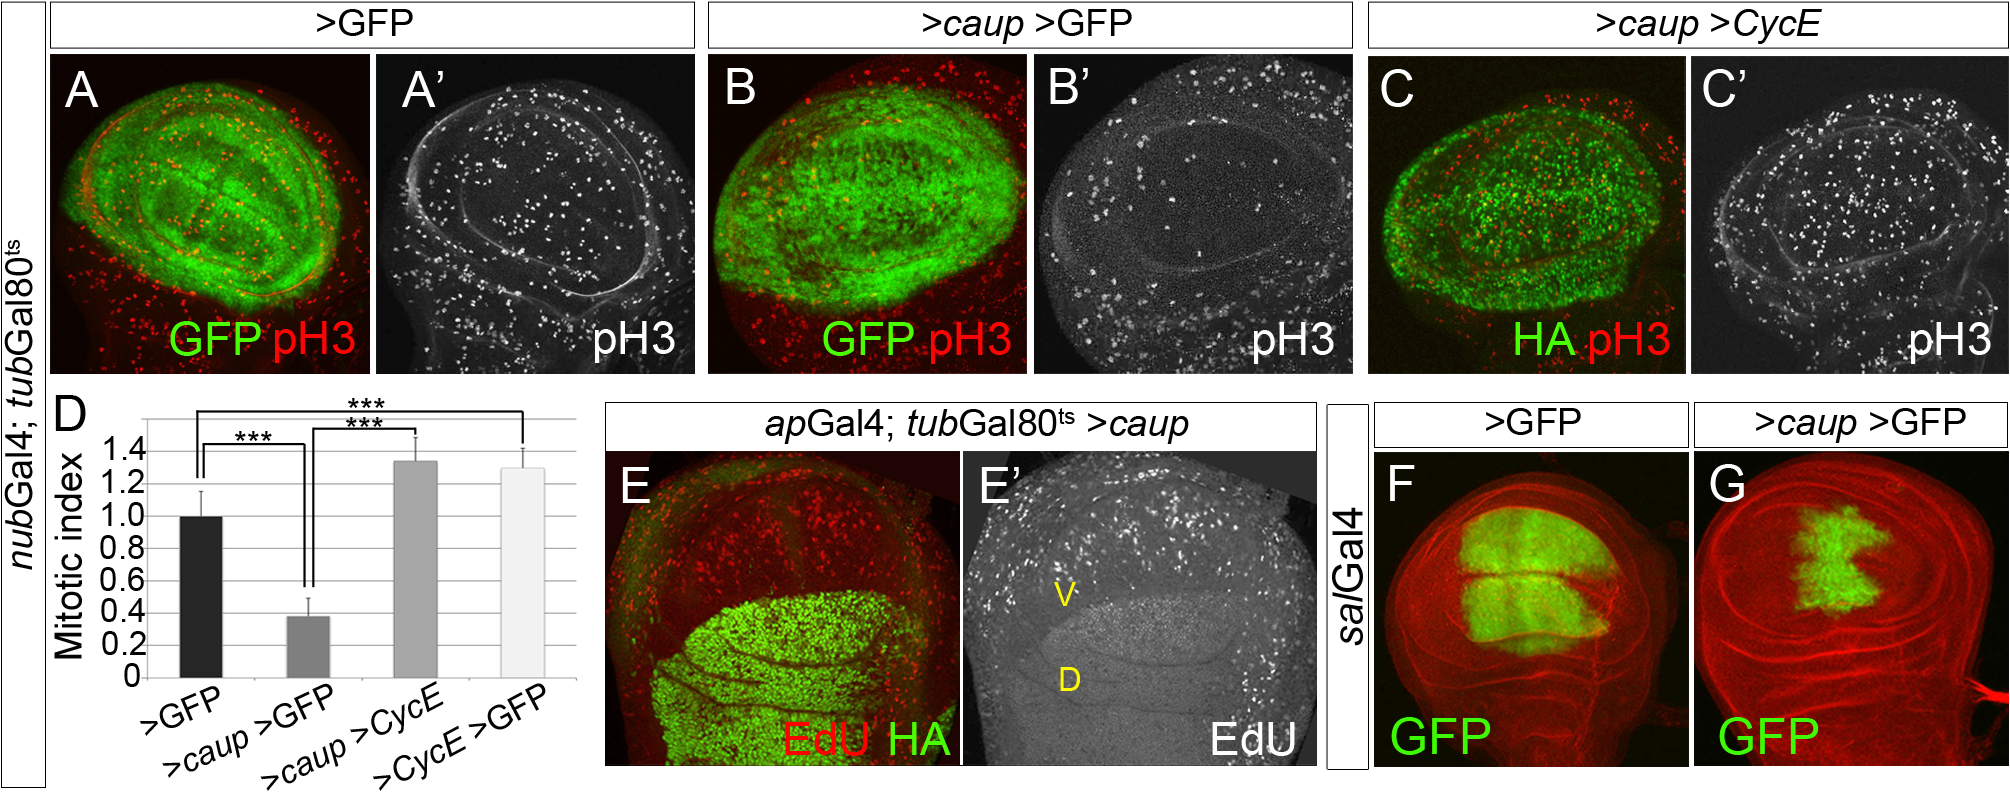 Over-expression of <i>caup</i> inhibits cell cycle progression.